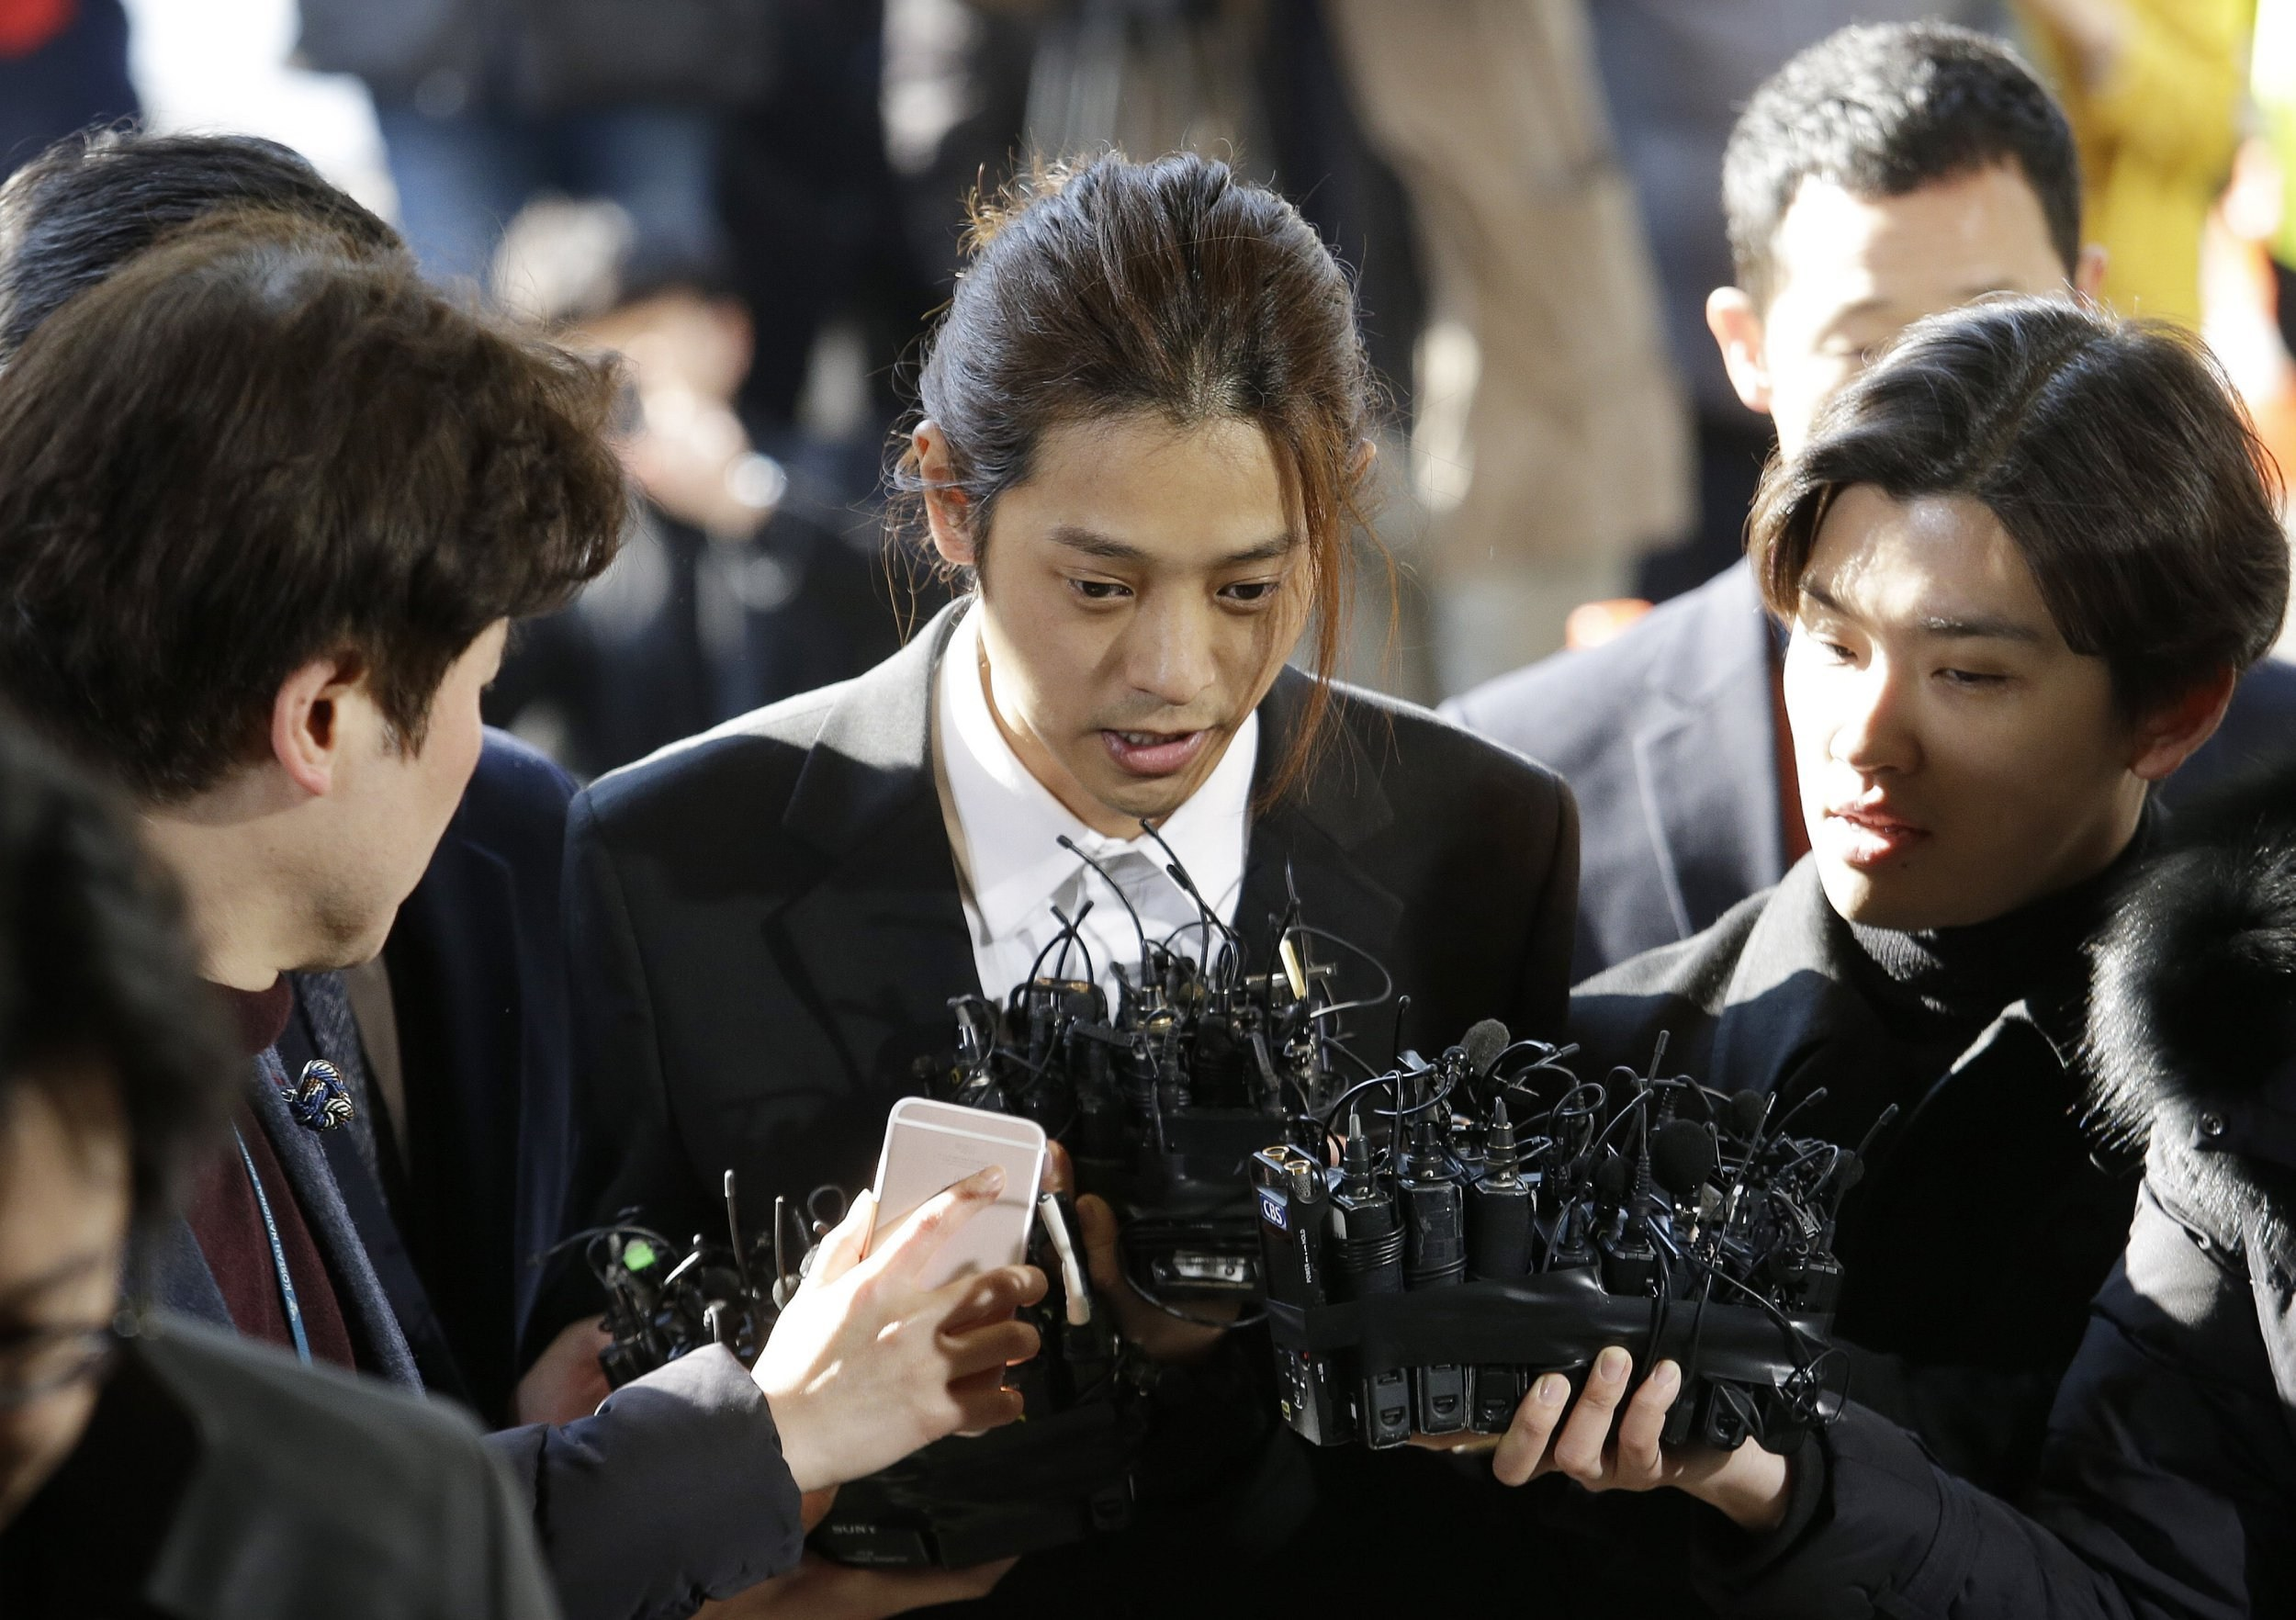 K-pop stars Jung Joon Young and Choi Jong Hoon have prison sentences reduced in rape case